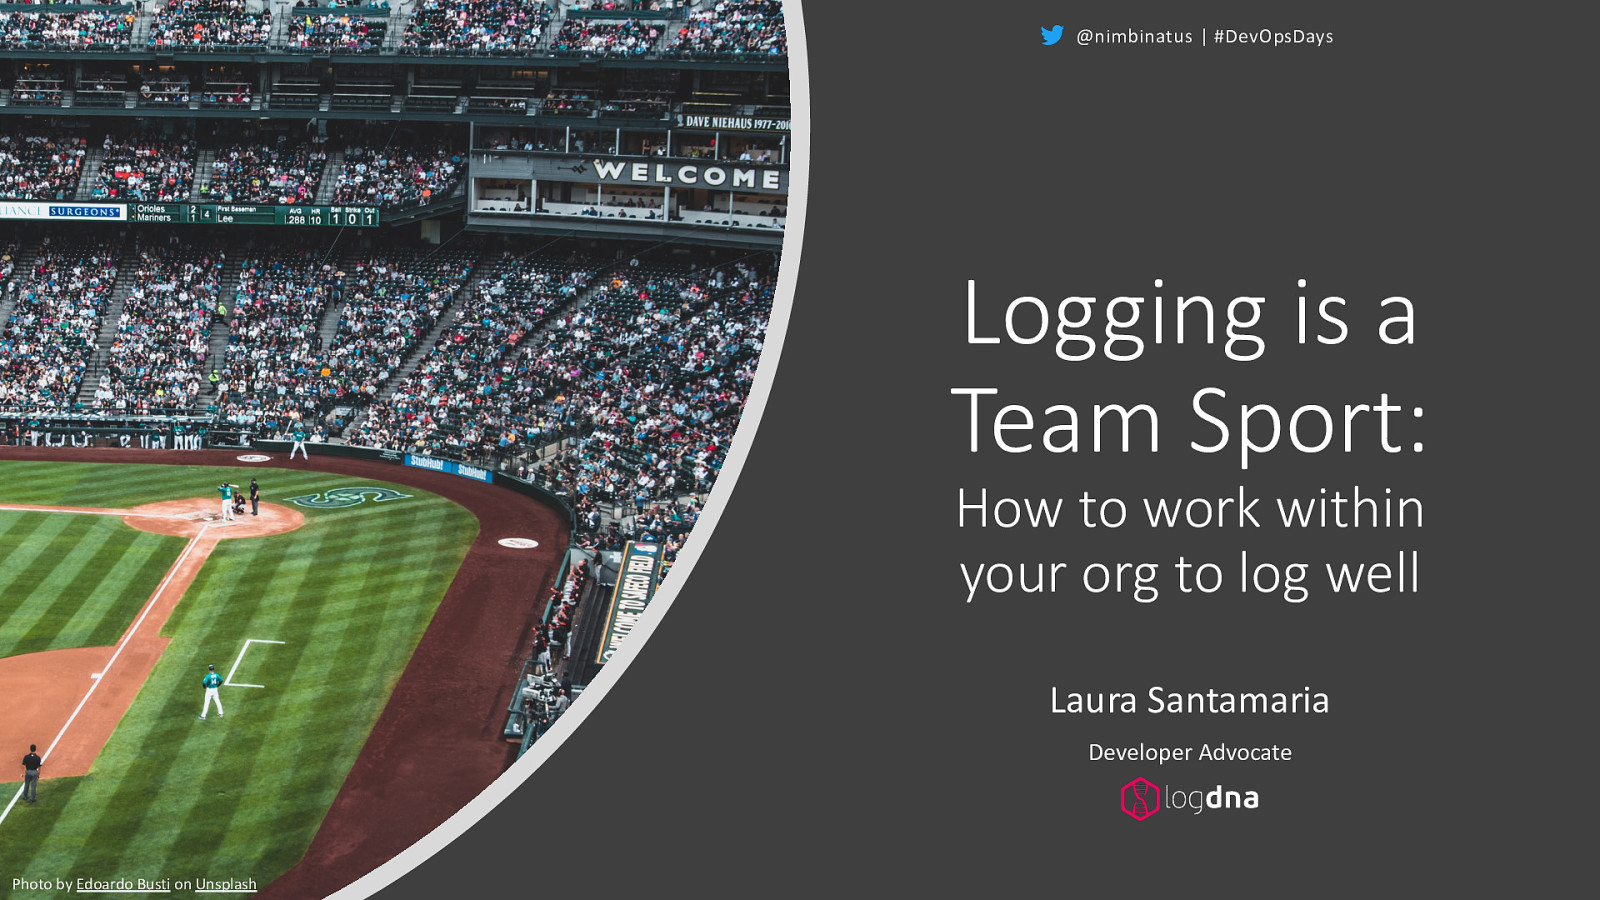 Logging is a Team Sport: How to work within your org to log well